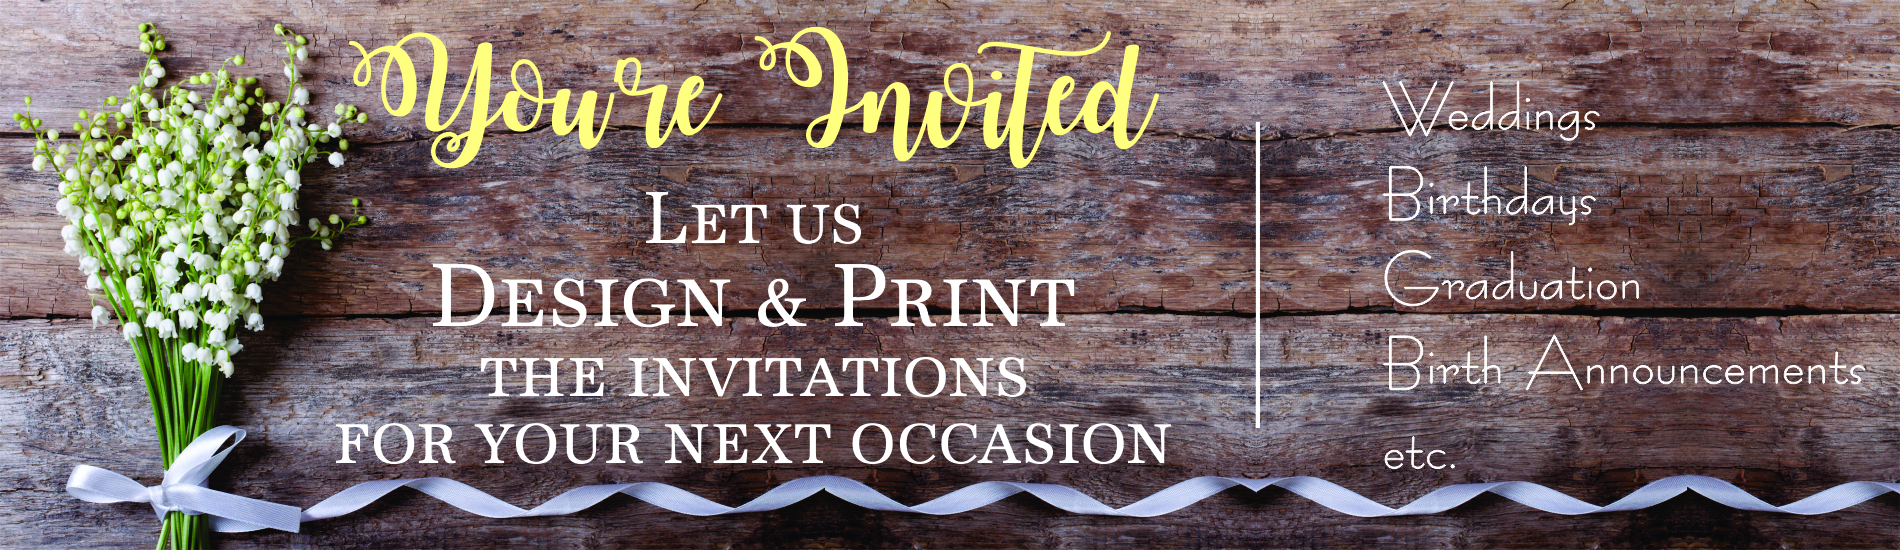 Invitation slide